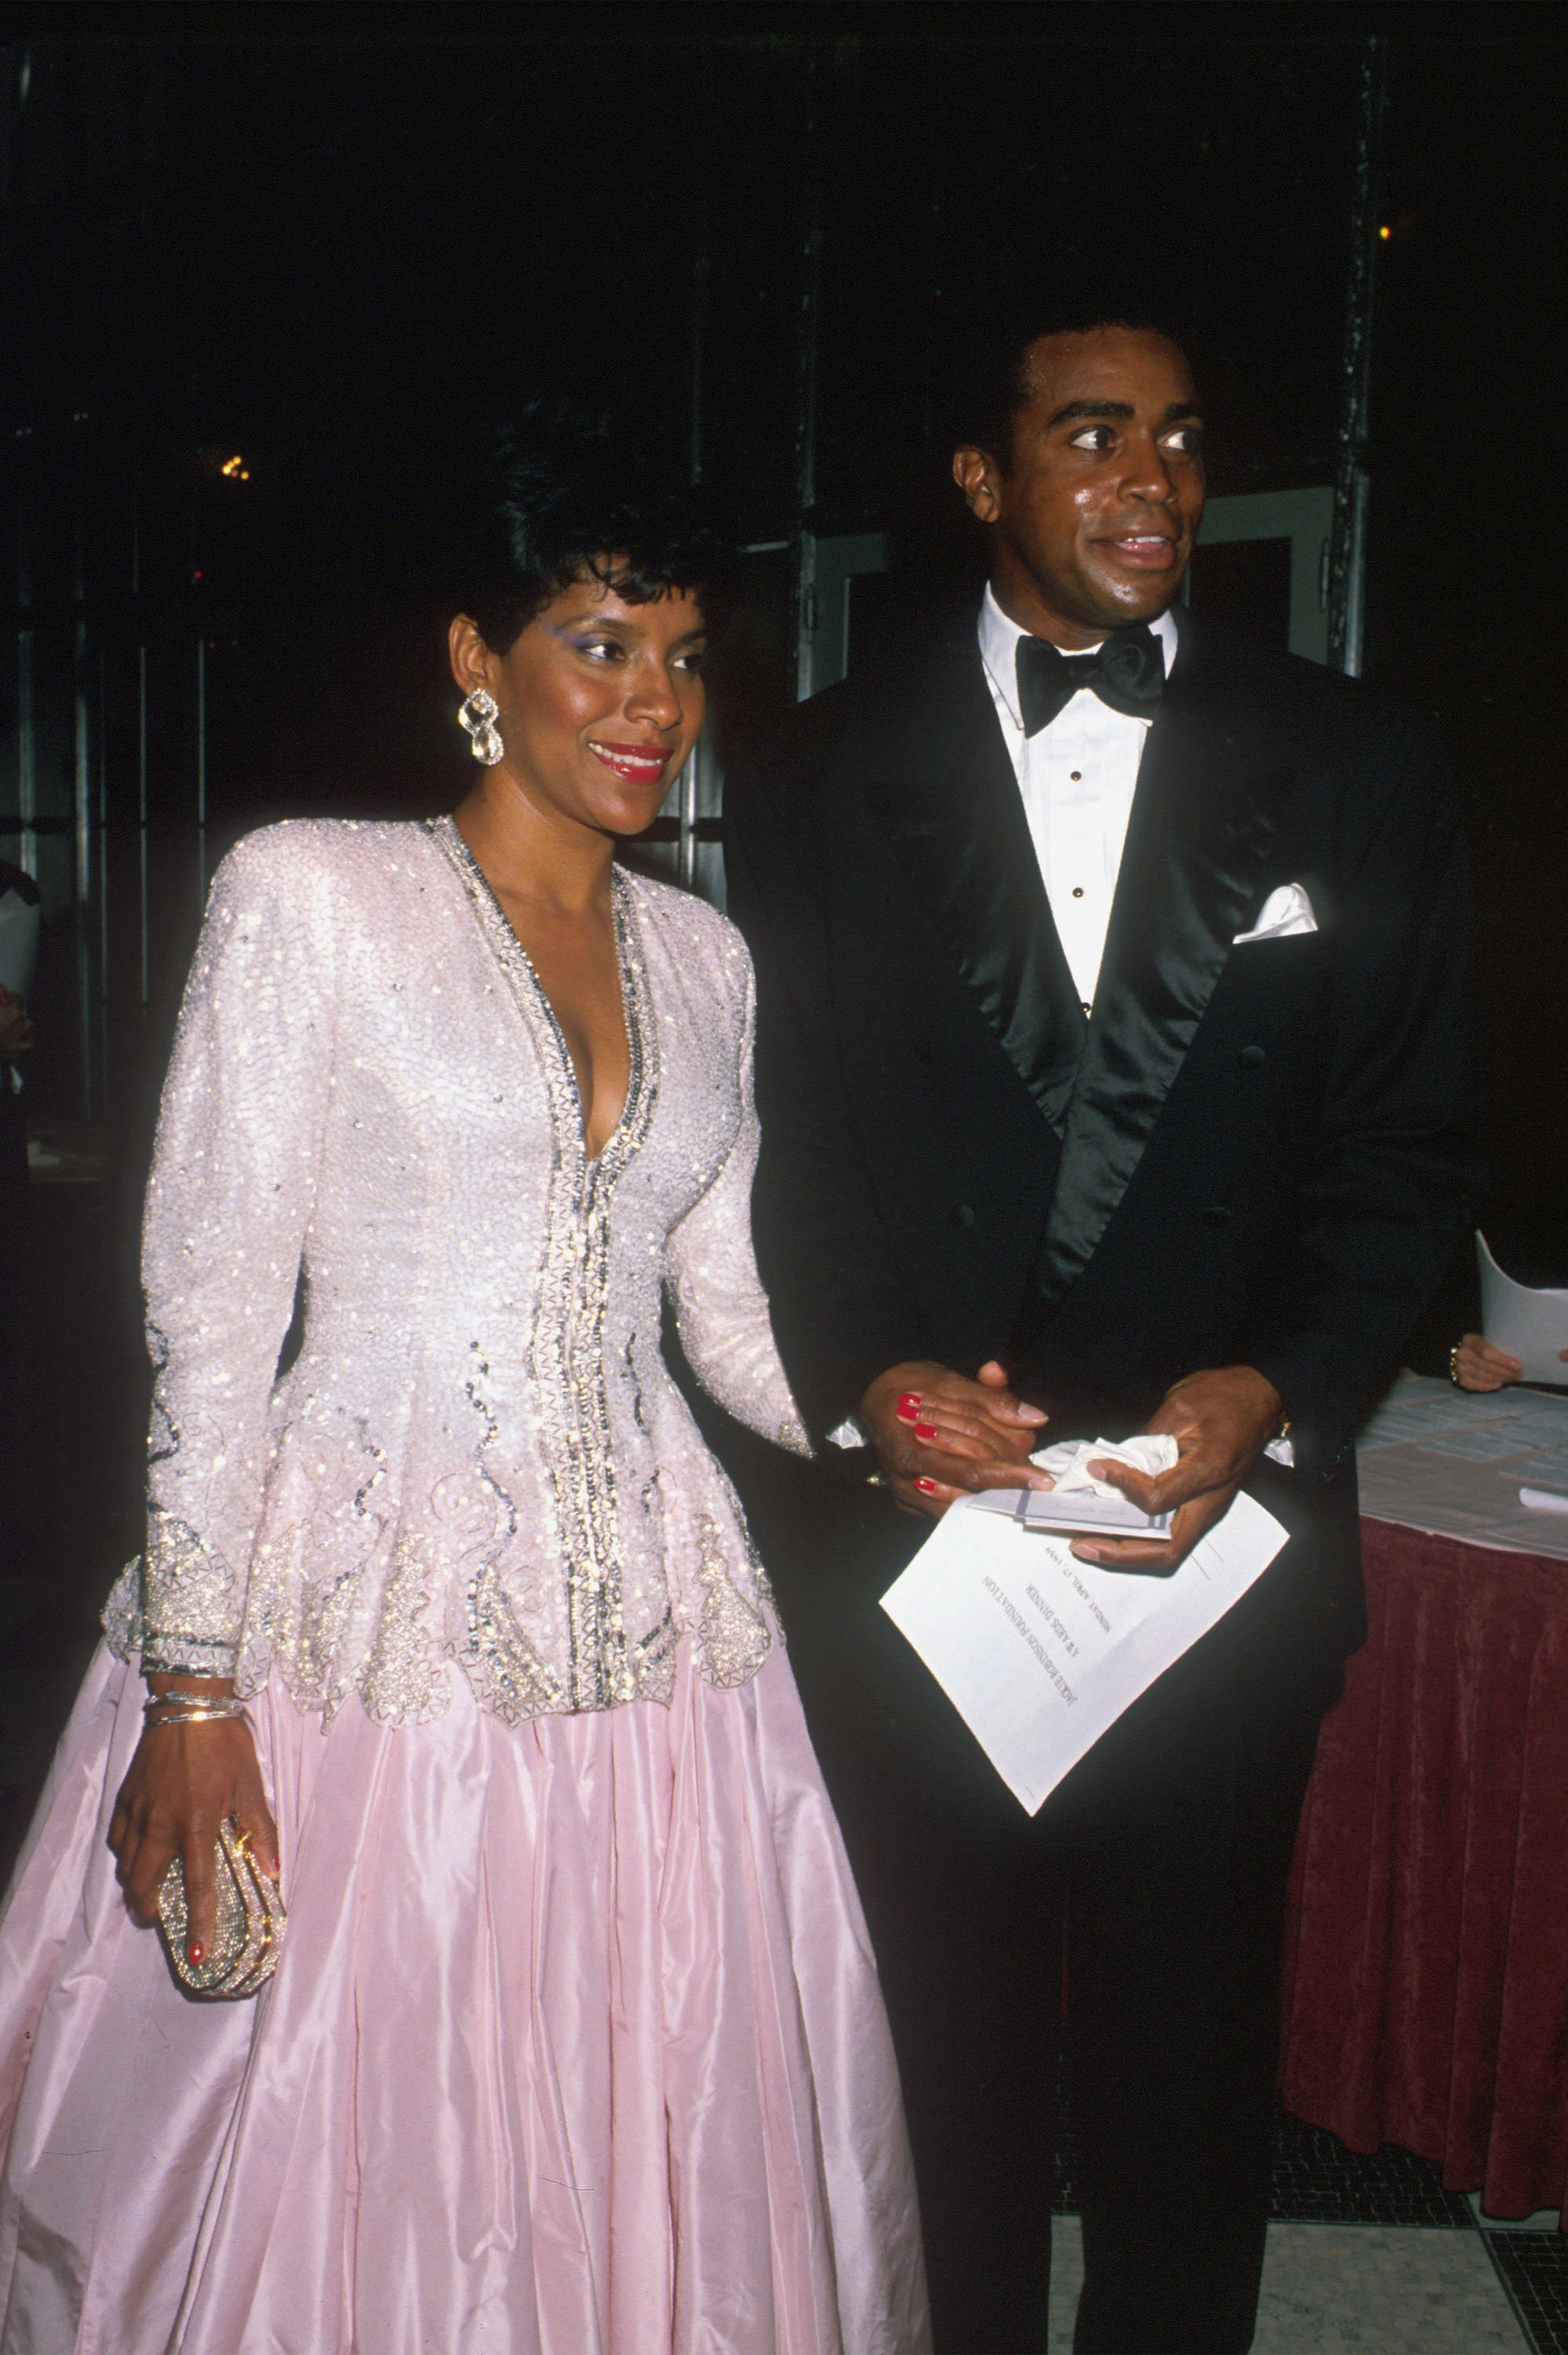 Phylicia Rashad and Ahmad Rashad arrive at an event in New York City, April 15, 1989. | Photo: GettyImages